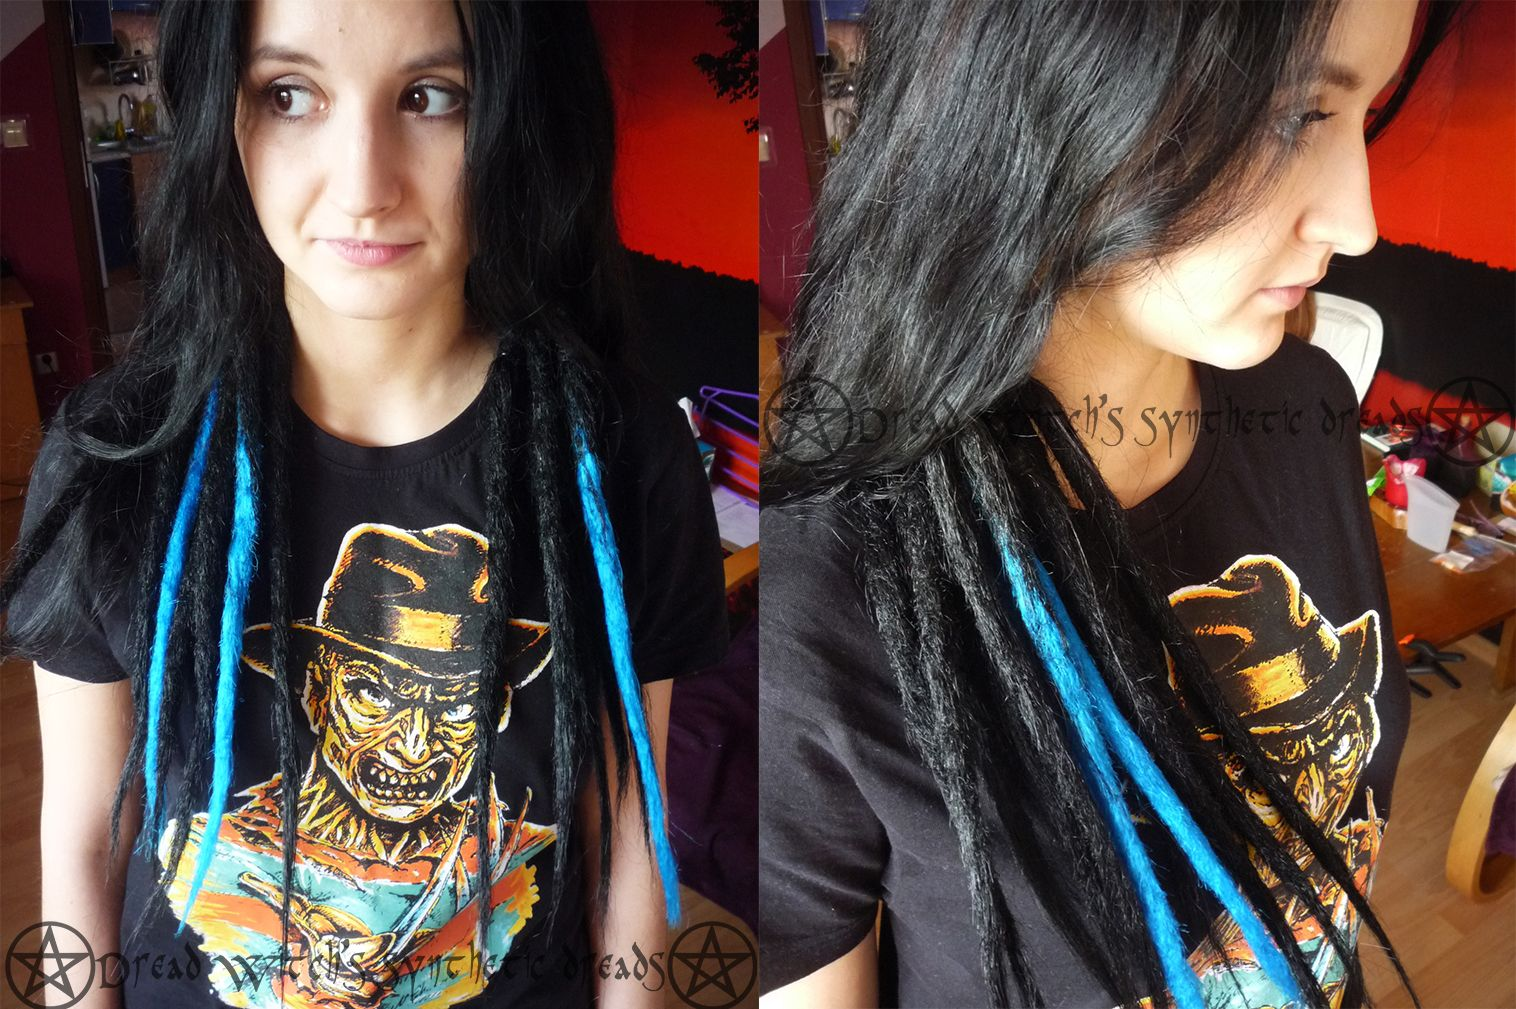 Maria Dreads by Dread Witch